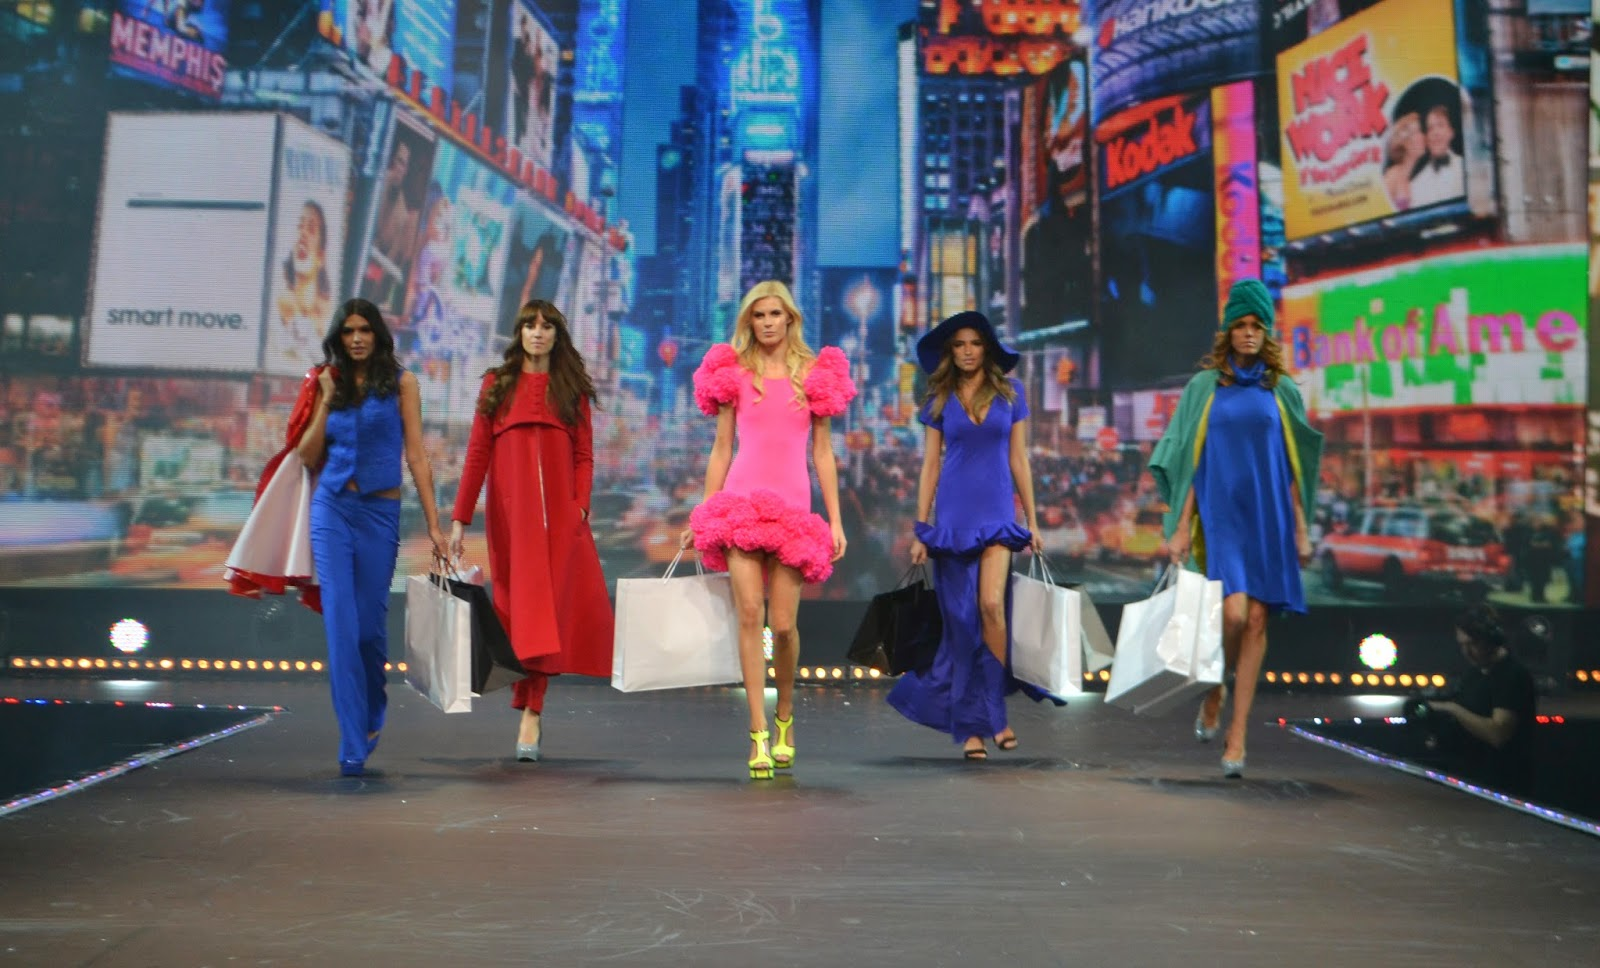 5 models walking down the runway. an image of times square is being used as a backdrop